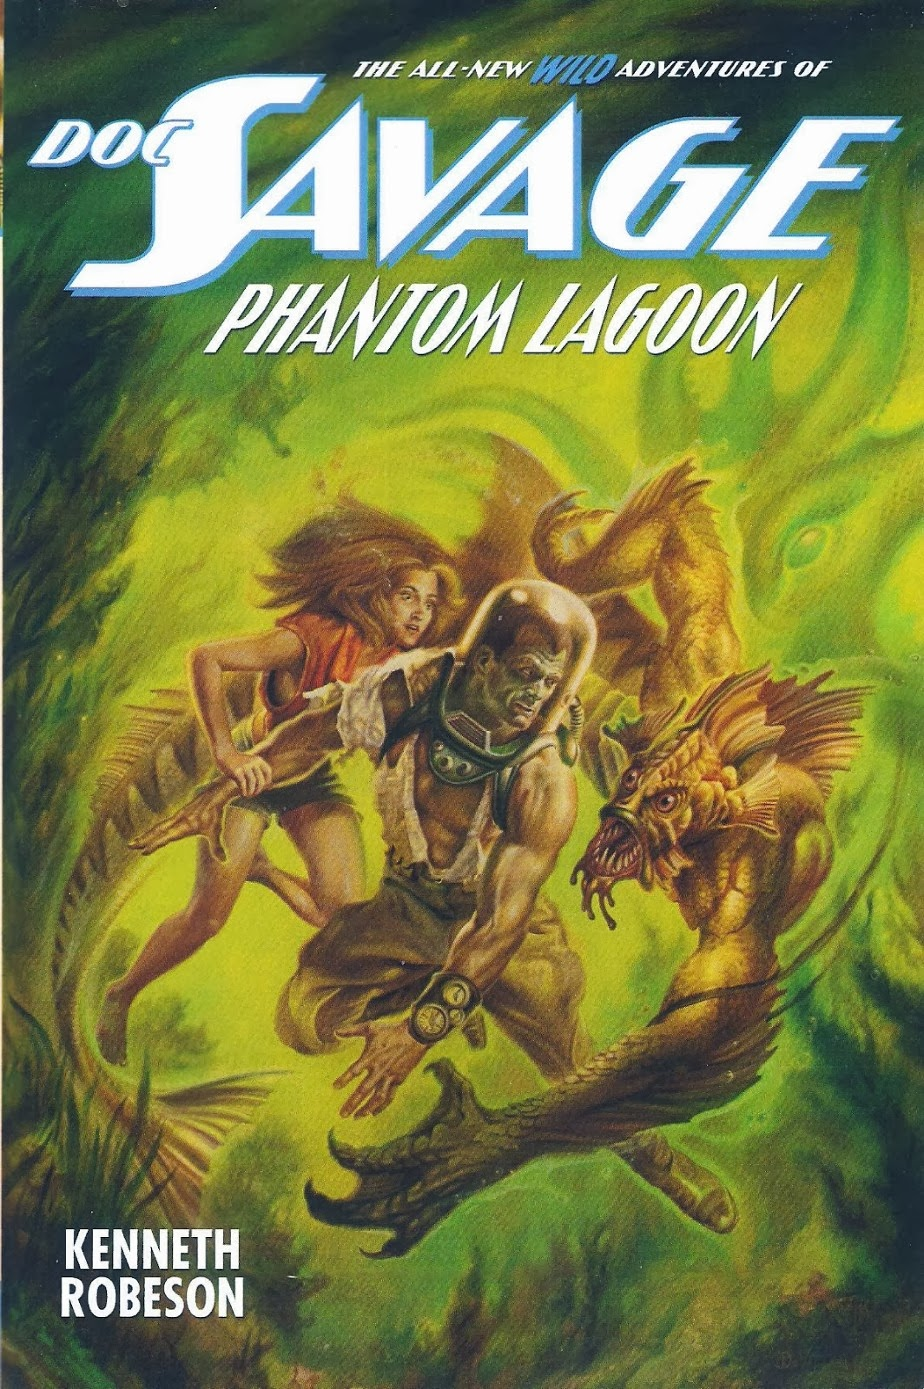 No New Books Take Me Back To The Reading Pleasures Of My Youth More Than  The Doc Savage Novels By Will Murray The Latest One, Phantom Lagoon,